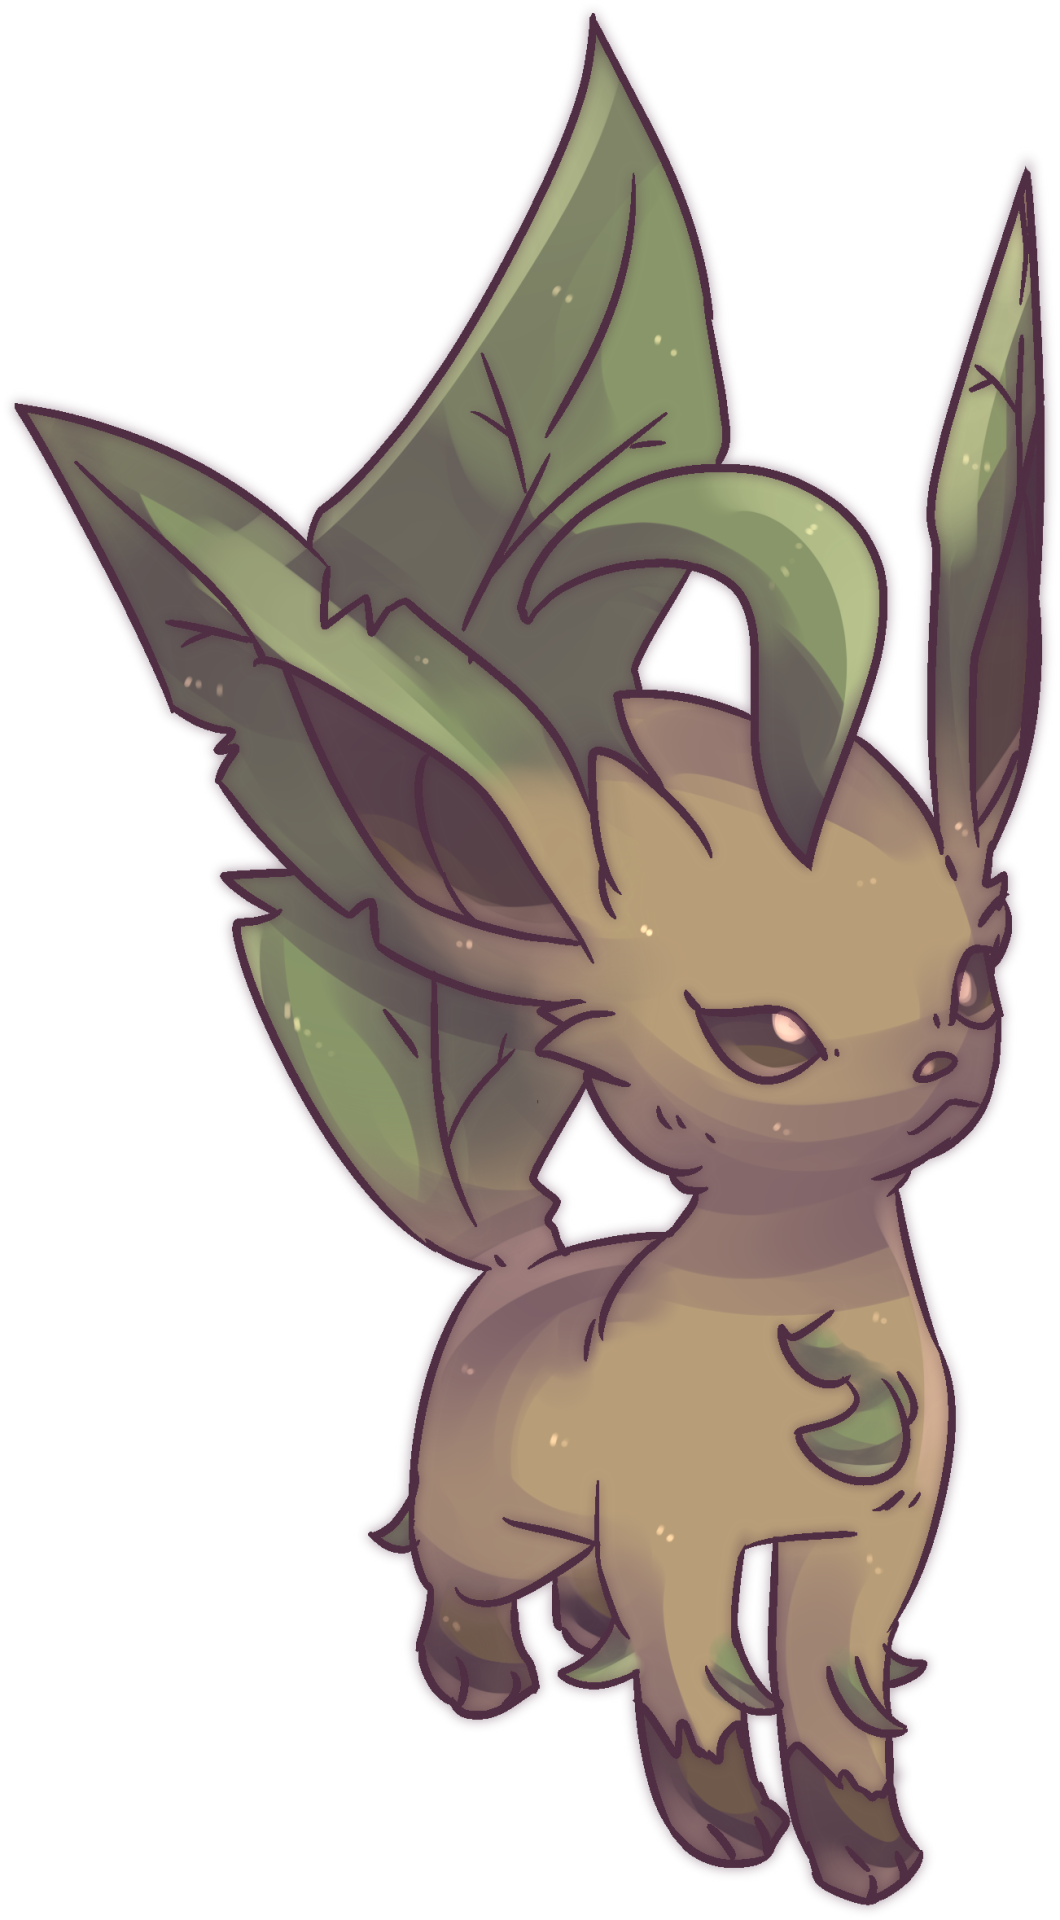 Commission drawing tumblr post. Hanako s leafia leafeon